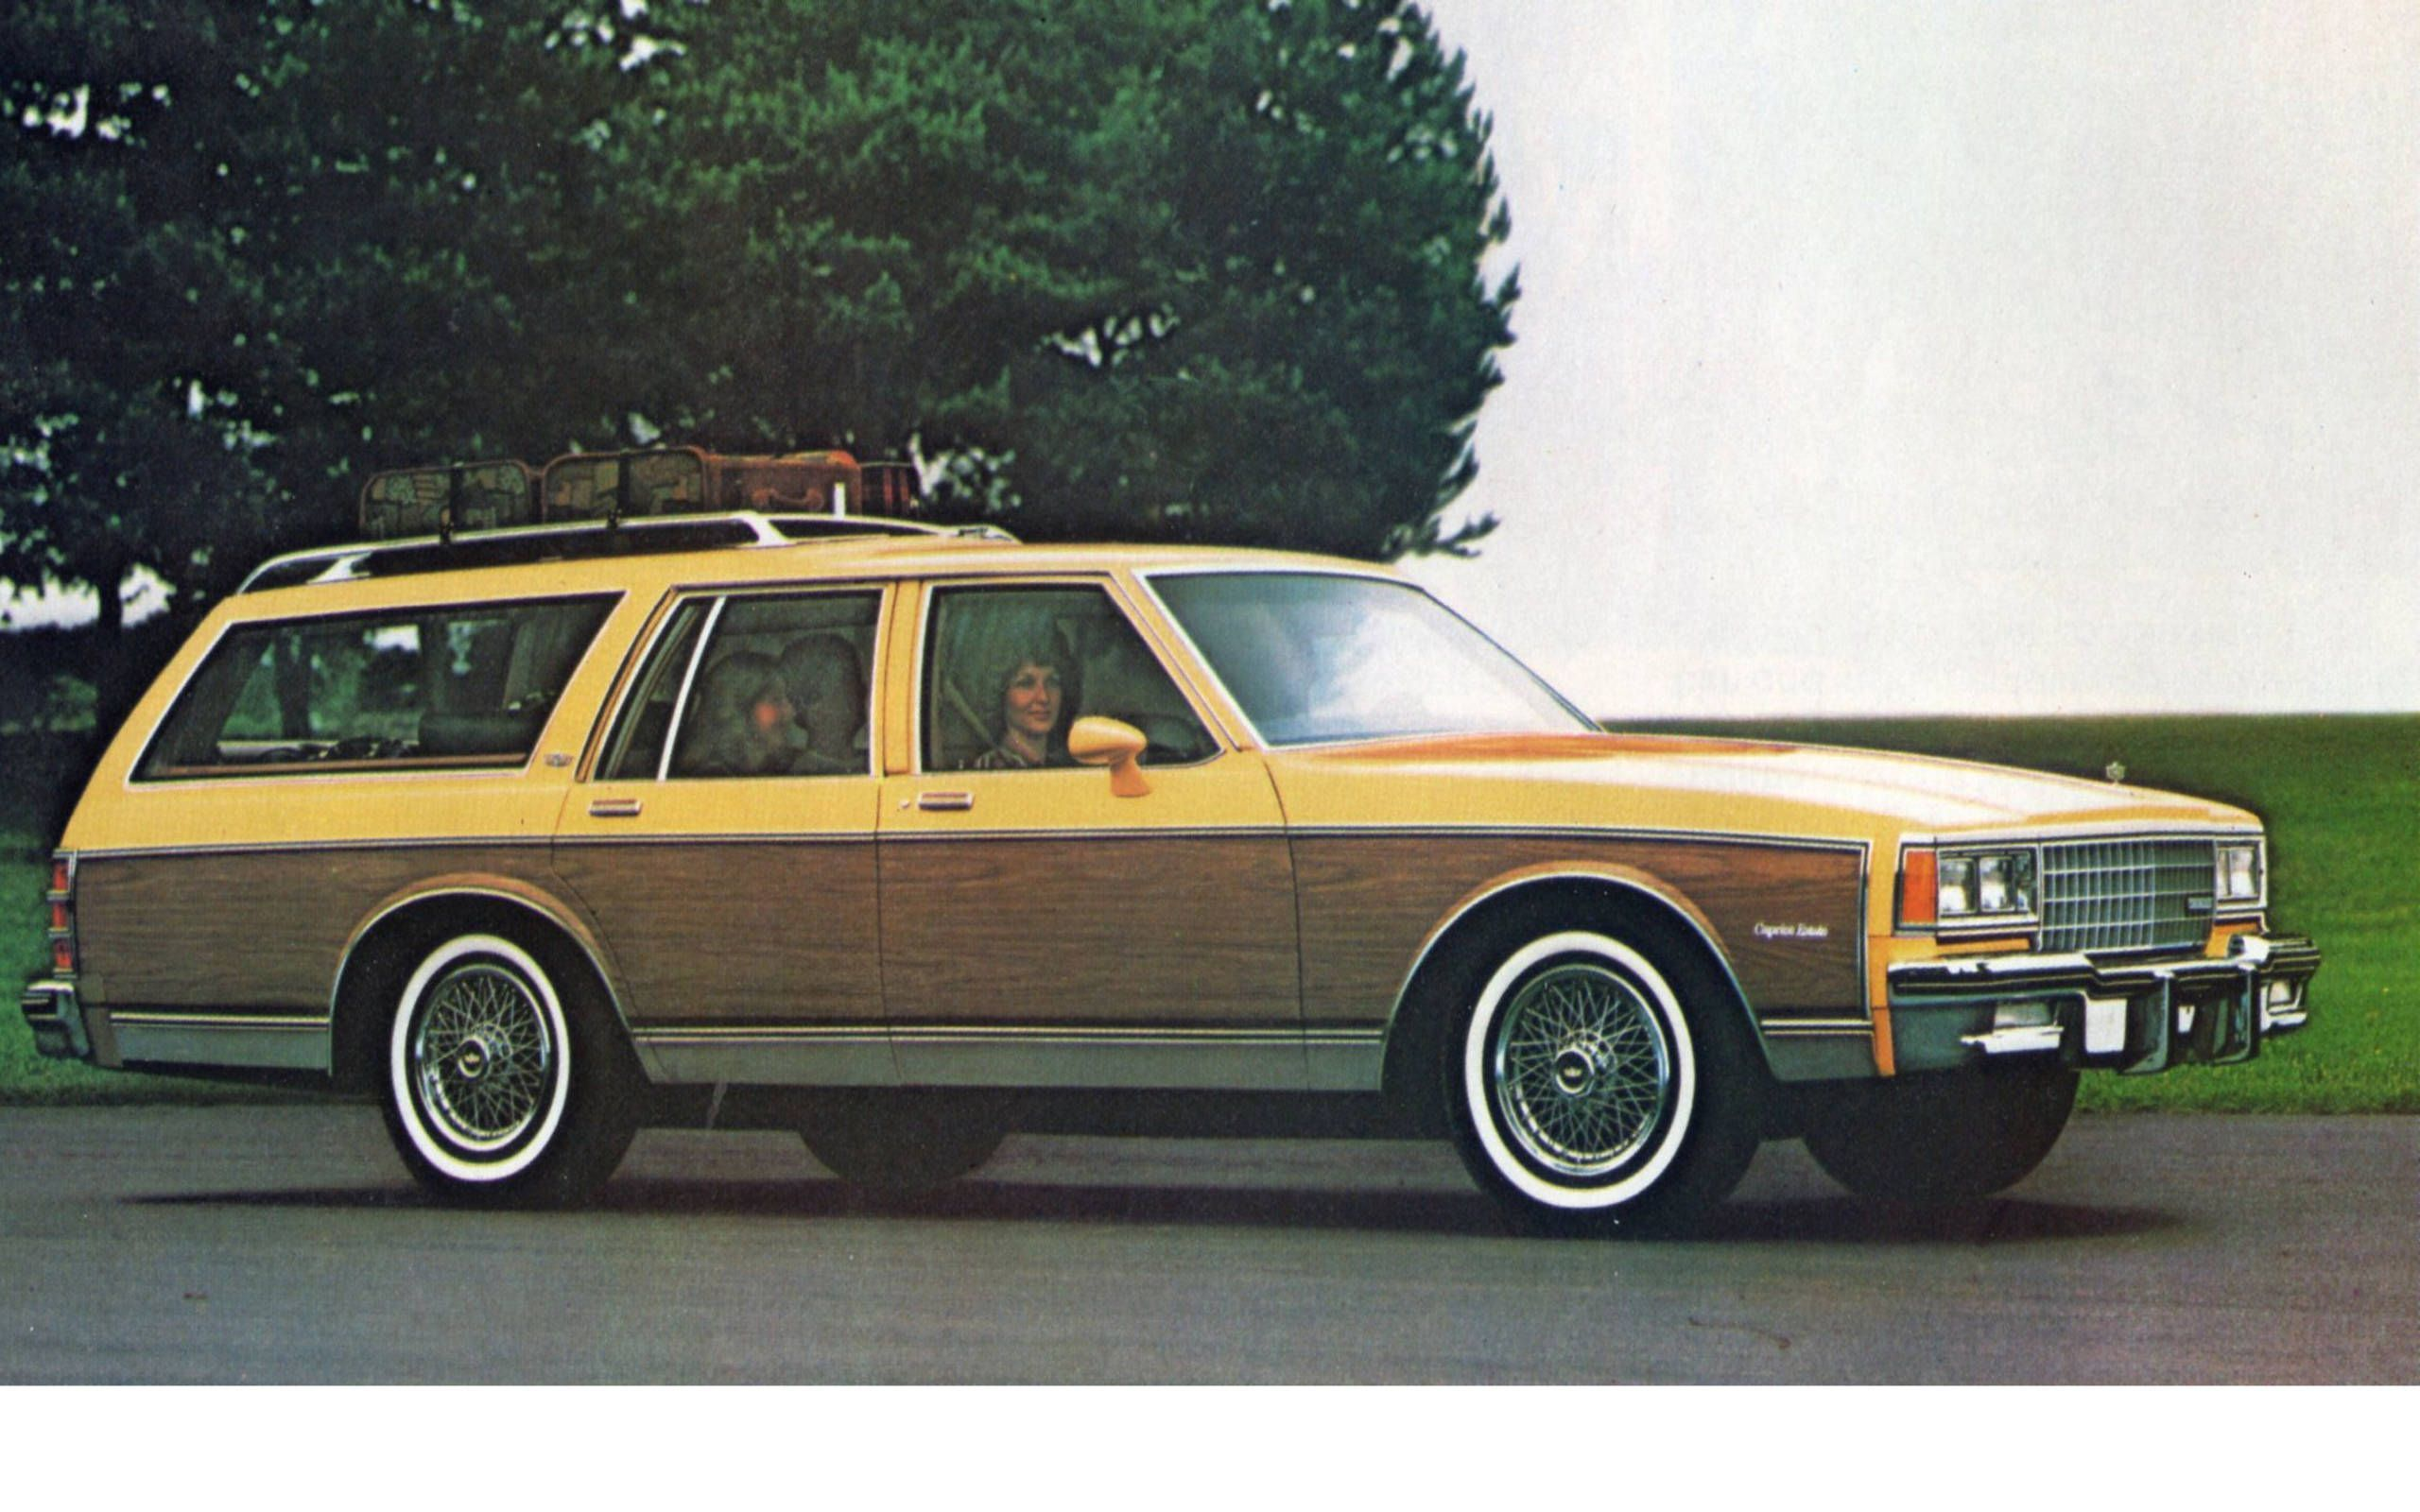 1980 1985 Chevrolet Caprice Wagon In 2020 Chevrolet Caprice